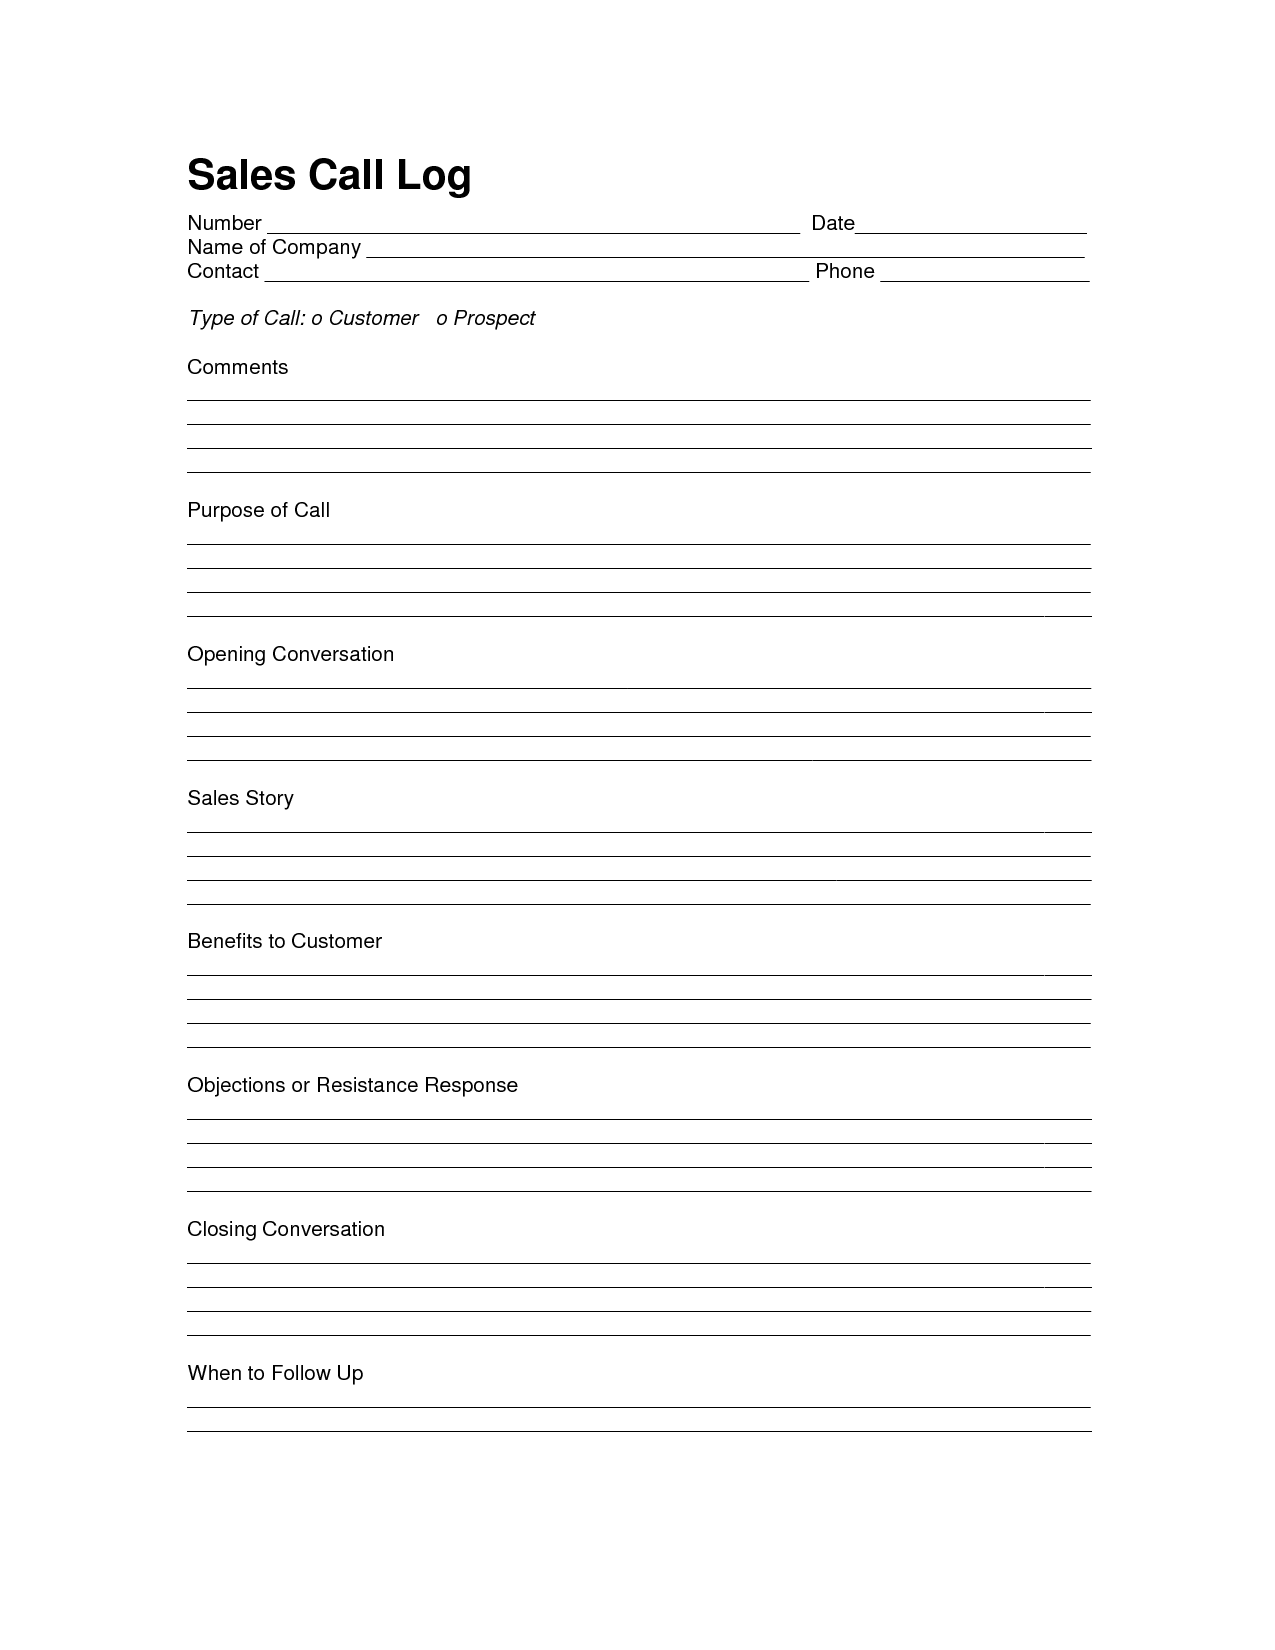 sales log sheet template Sales Call Log Template – Work Log Template